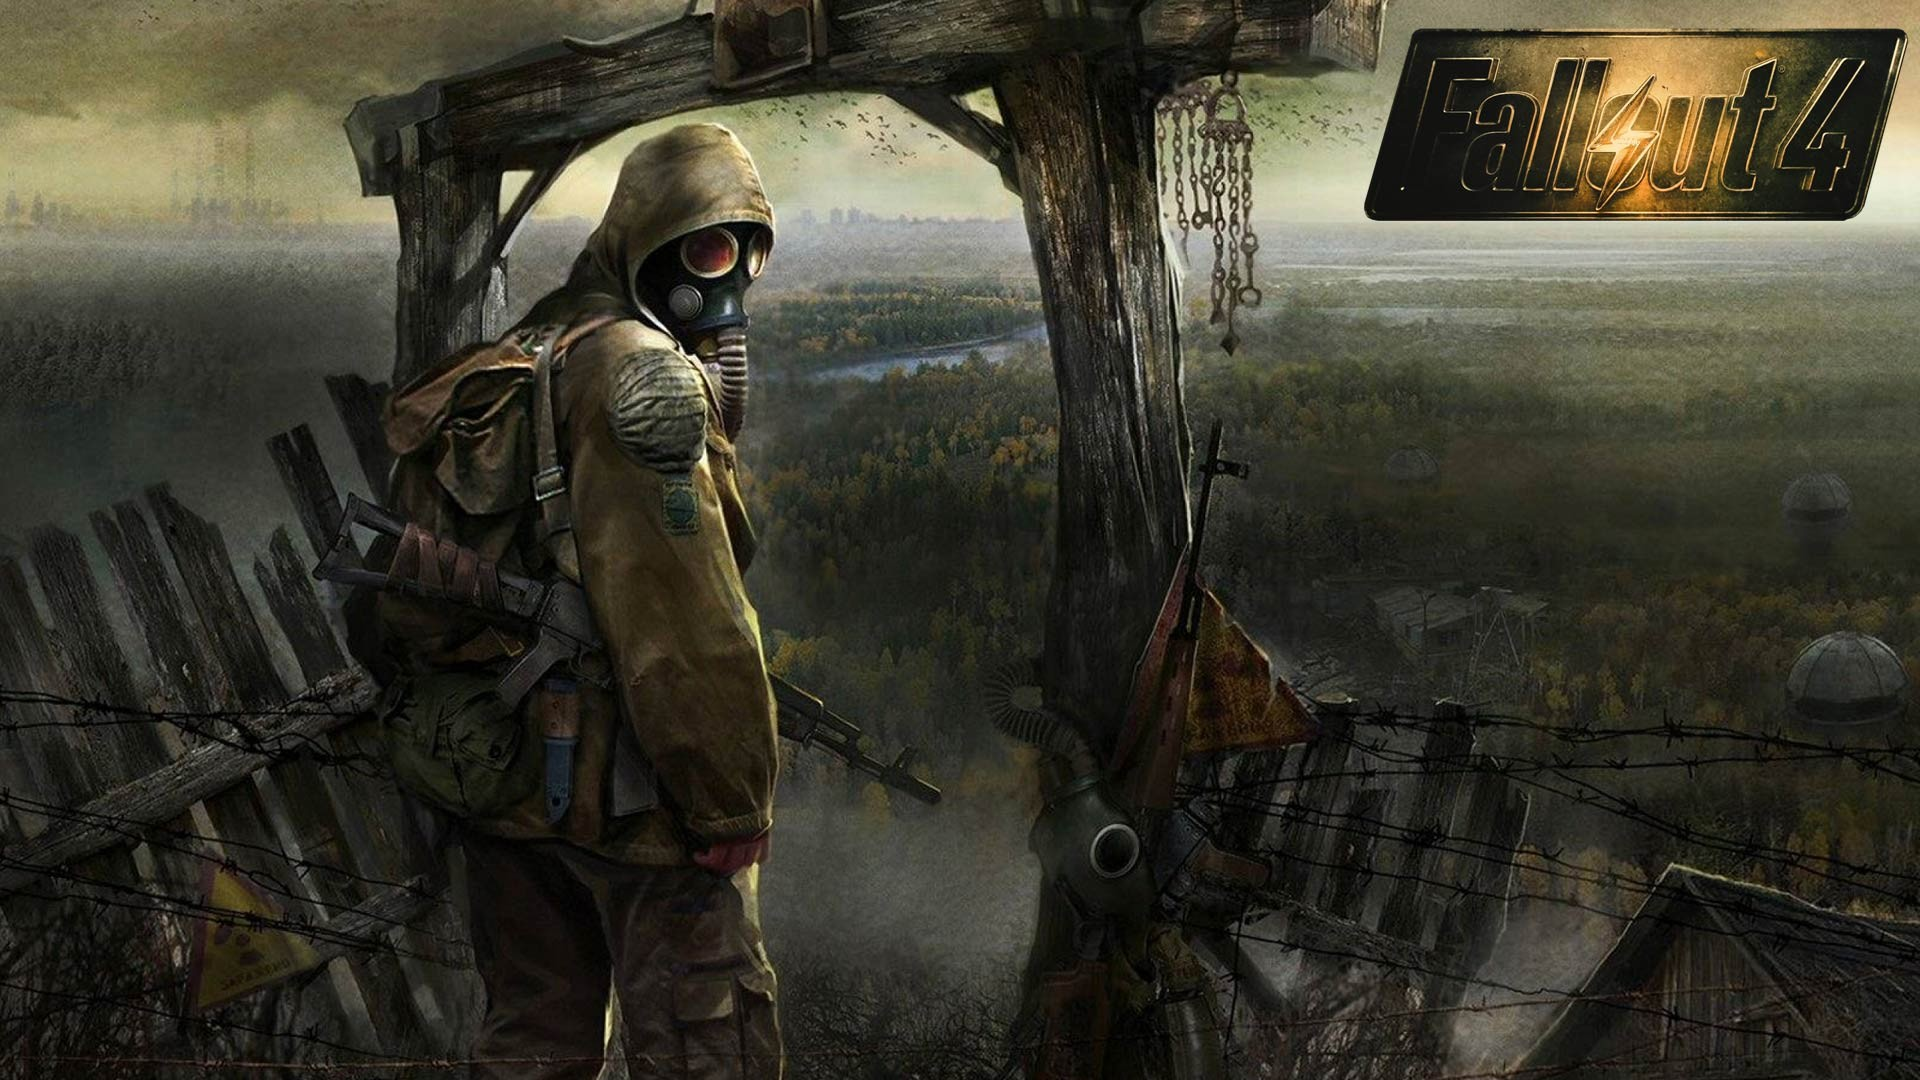 Fallout 4 hd wallpaper download free cool high resolution 1920x1080 on october 2 2015 by stephen comments off on fallout 4 hd voltagebd Image collections